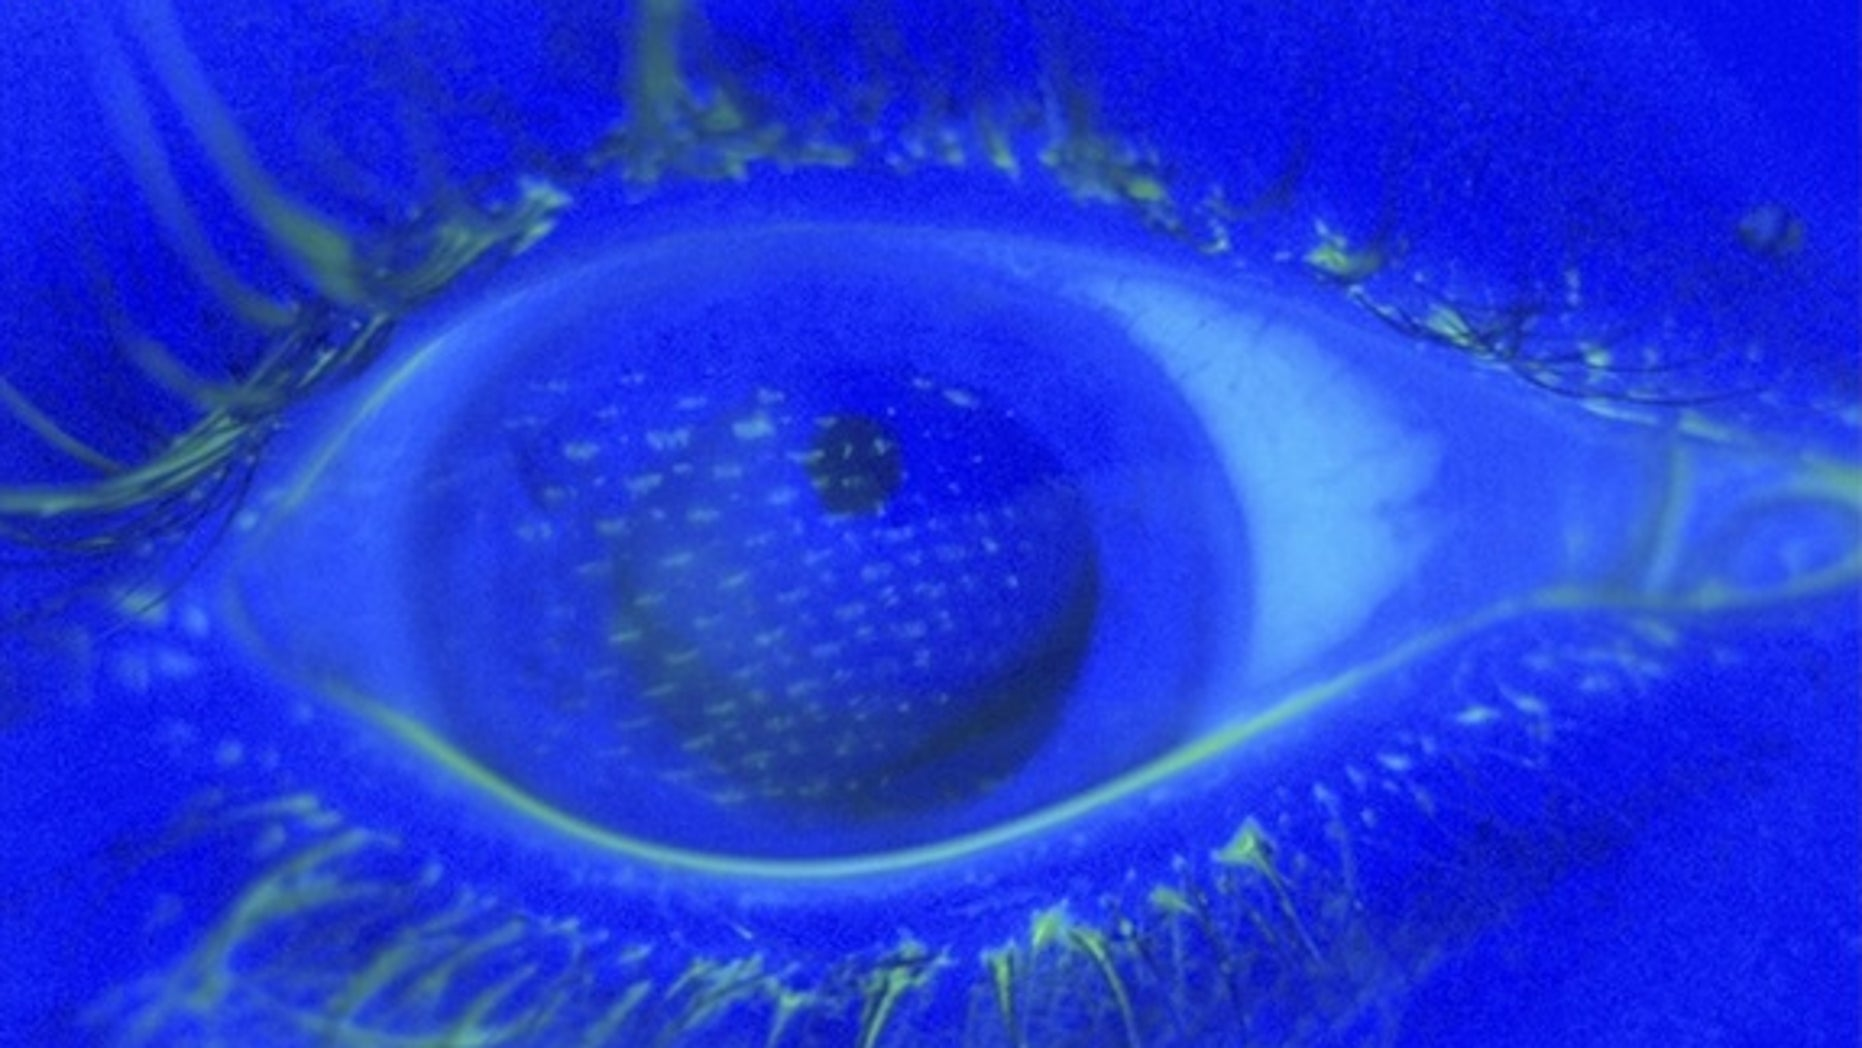 Under a blue light, fluorescein staining of the eye reveals an imprint of the nylon mesh pattern of the airbag cover on the corneal surface of the right eye.